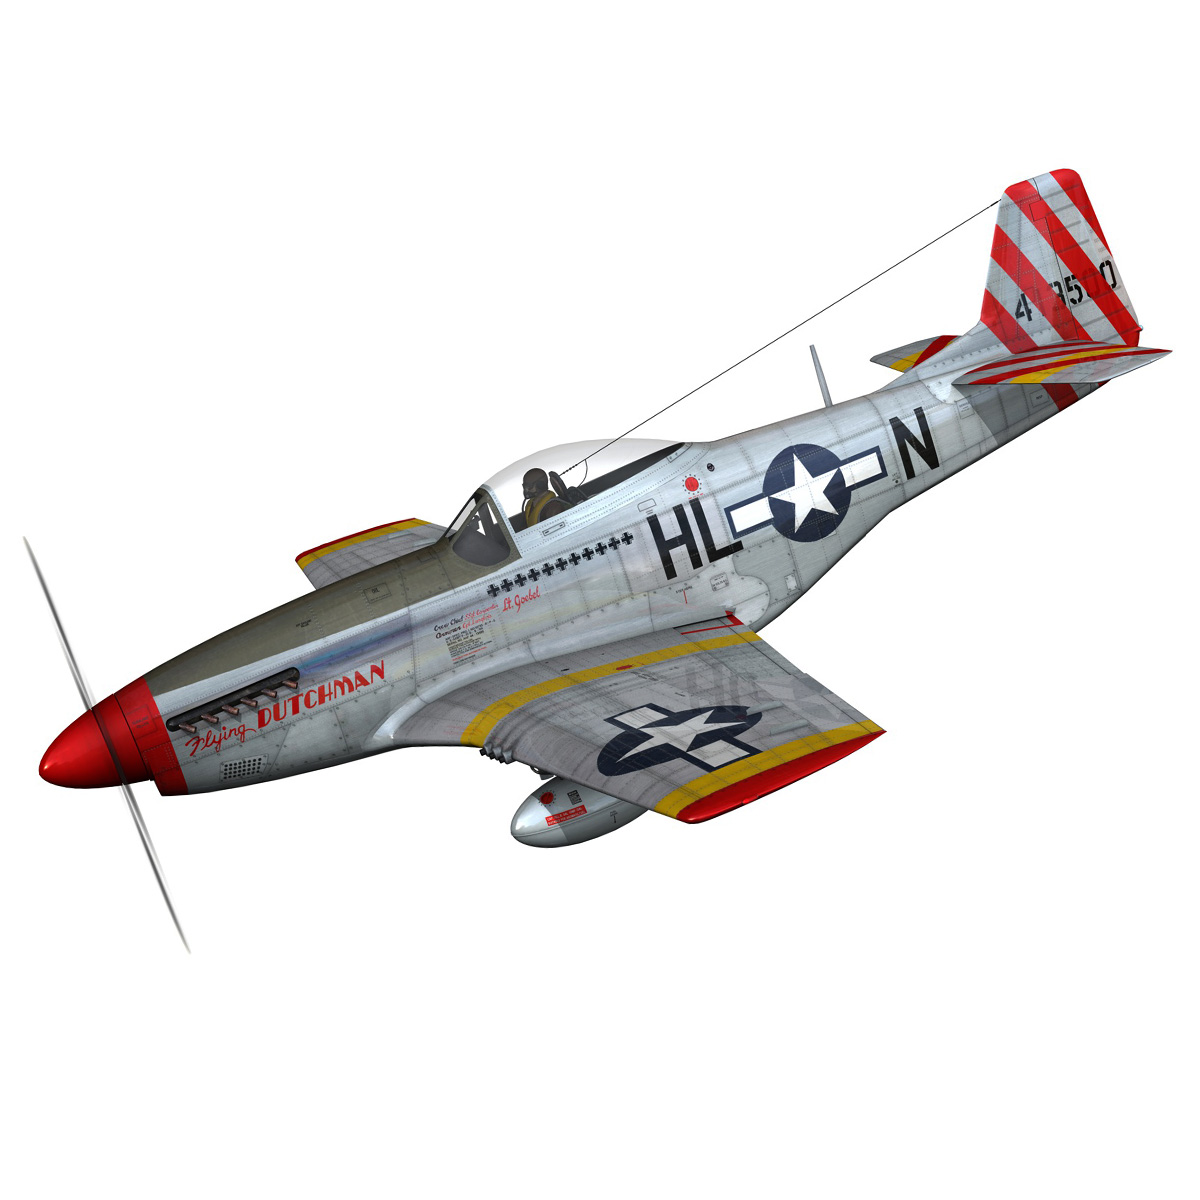 north american p-51d – flying dutchman 3d model fbx lwo lw lws obj c4d 267116